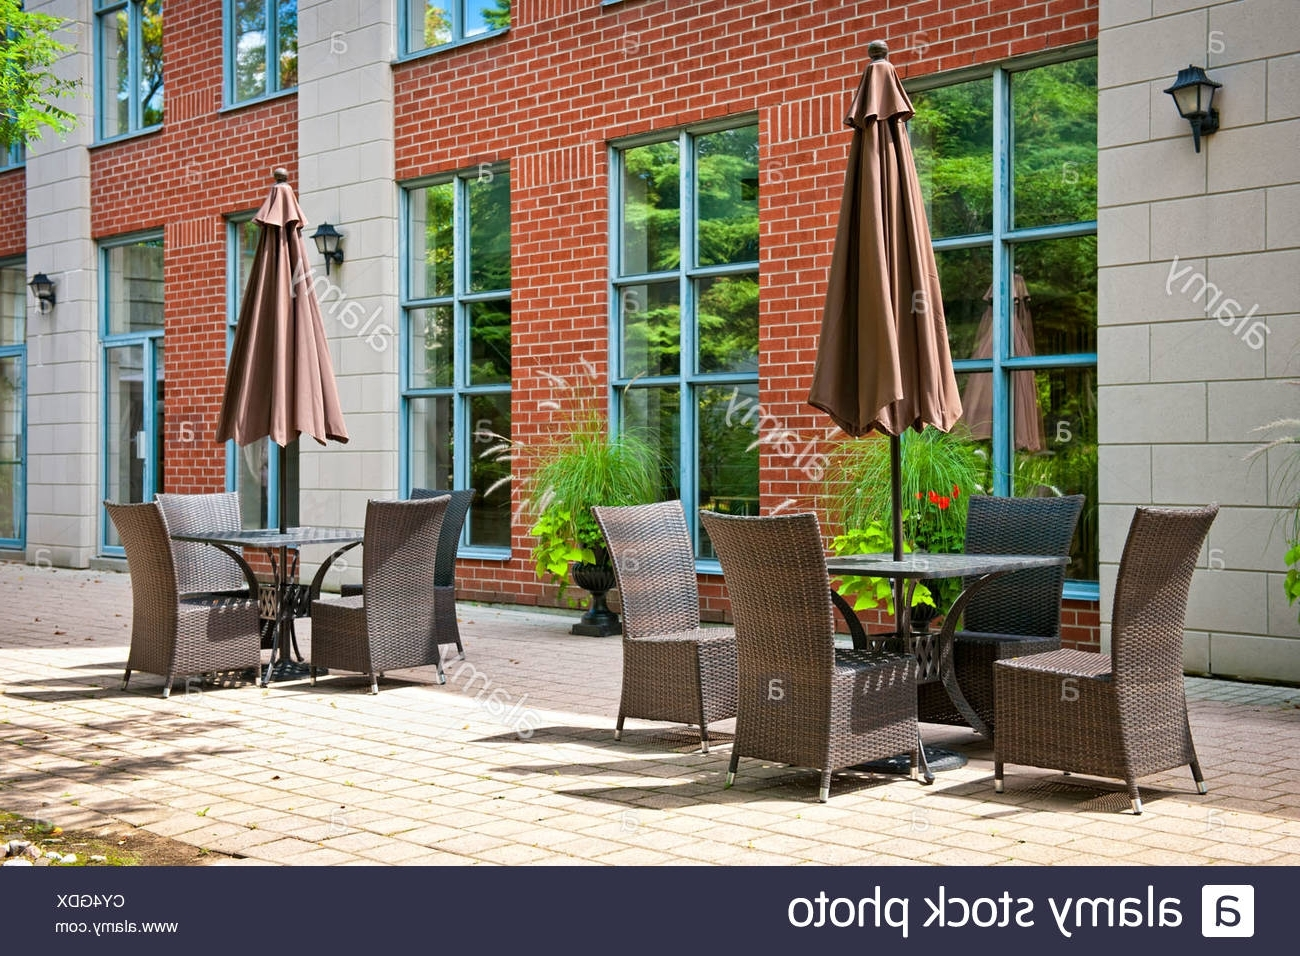 Best And Newest Patio Furniture With Umbrellas On Stone Patio Near Upscale Condo Intended For Upscale Patio Umbrellas (Gallery 17 of 20)